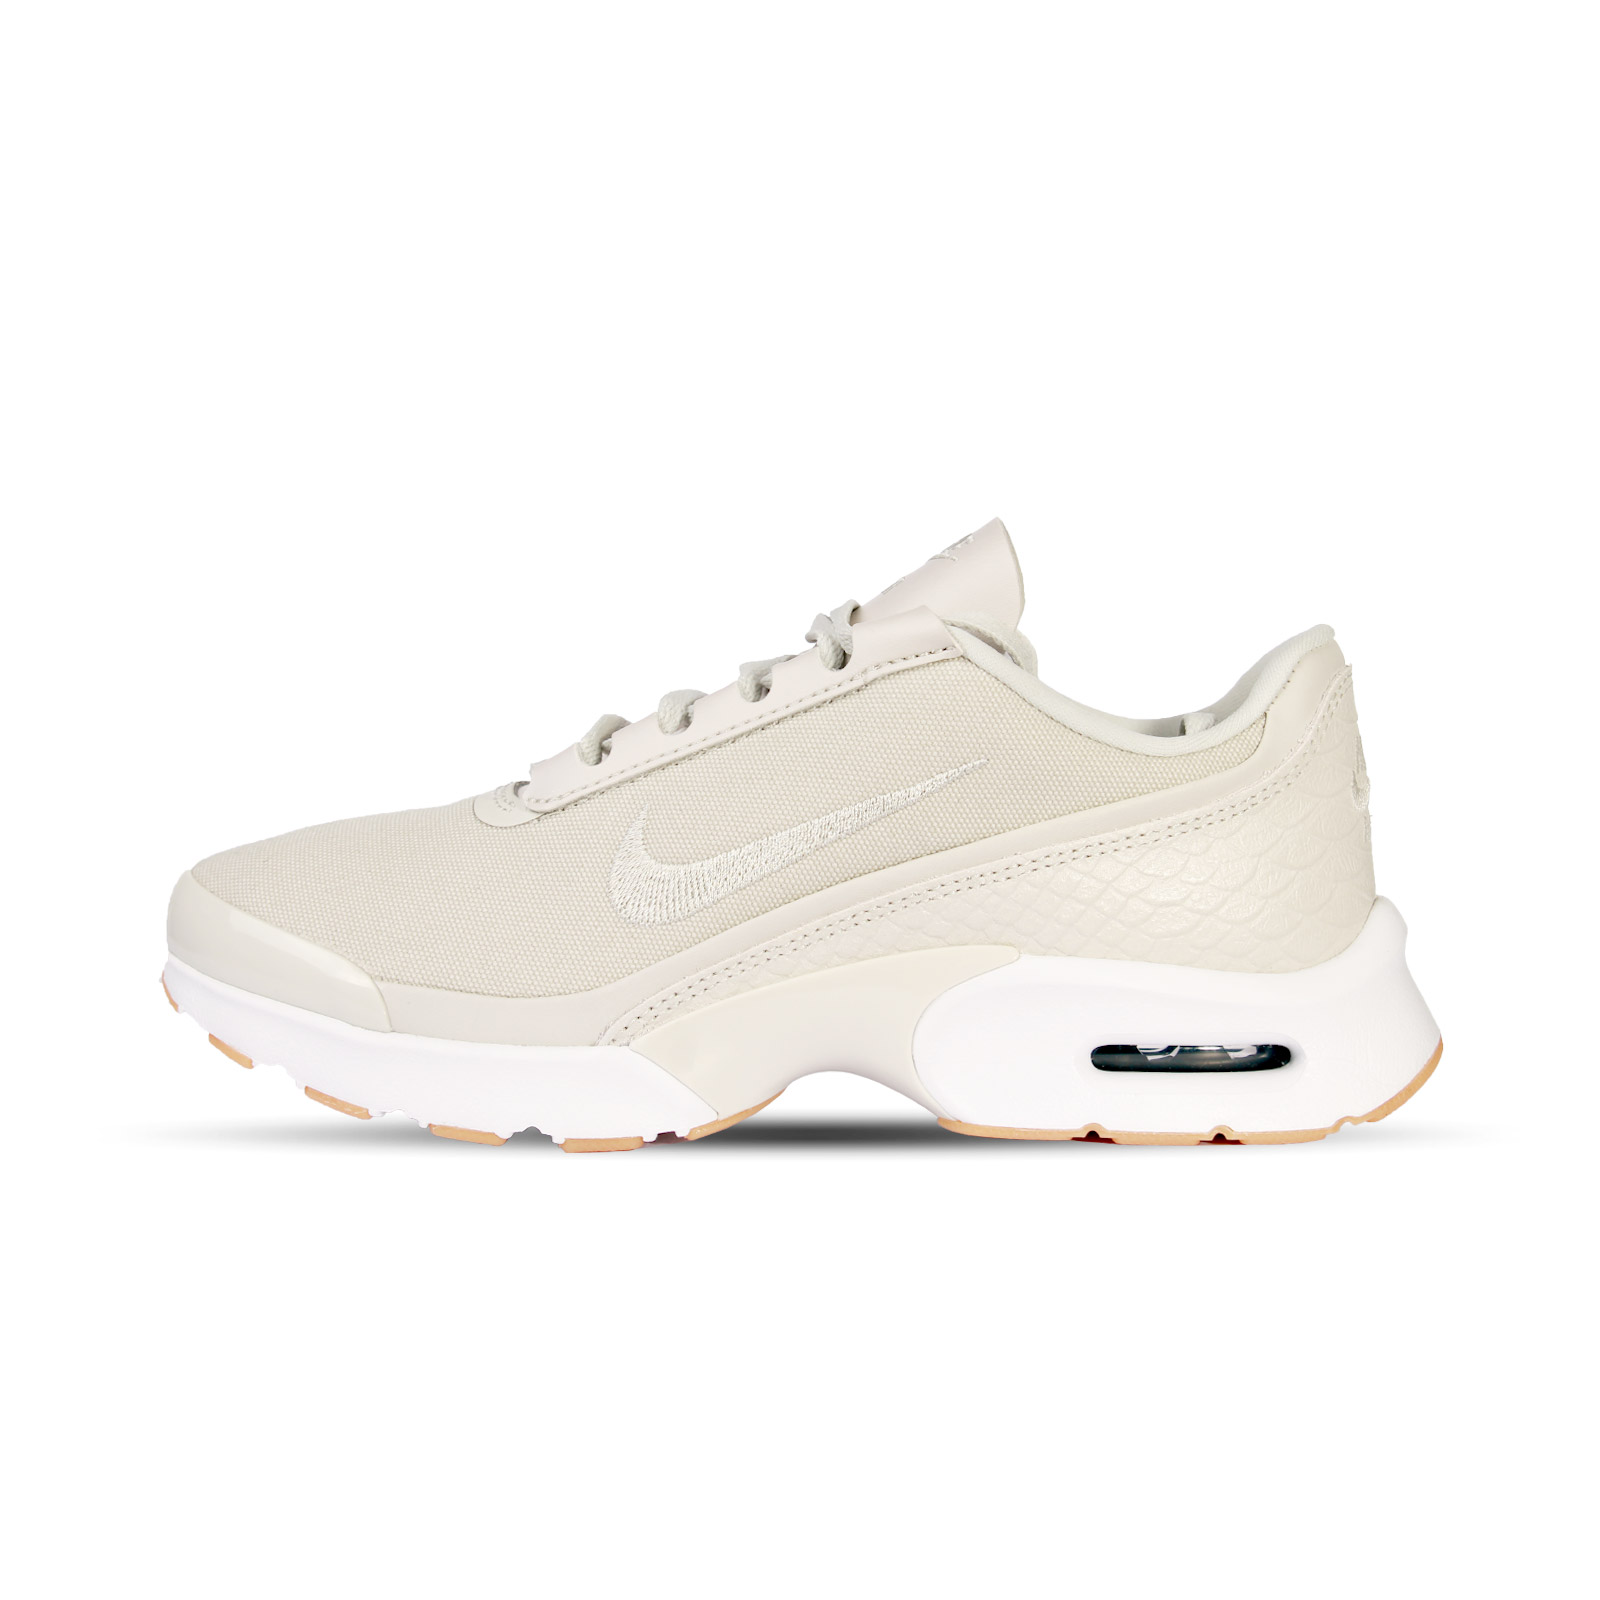 Vente air max jewell pas cher France 2571